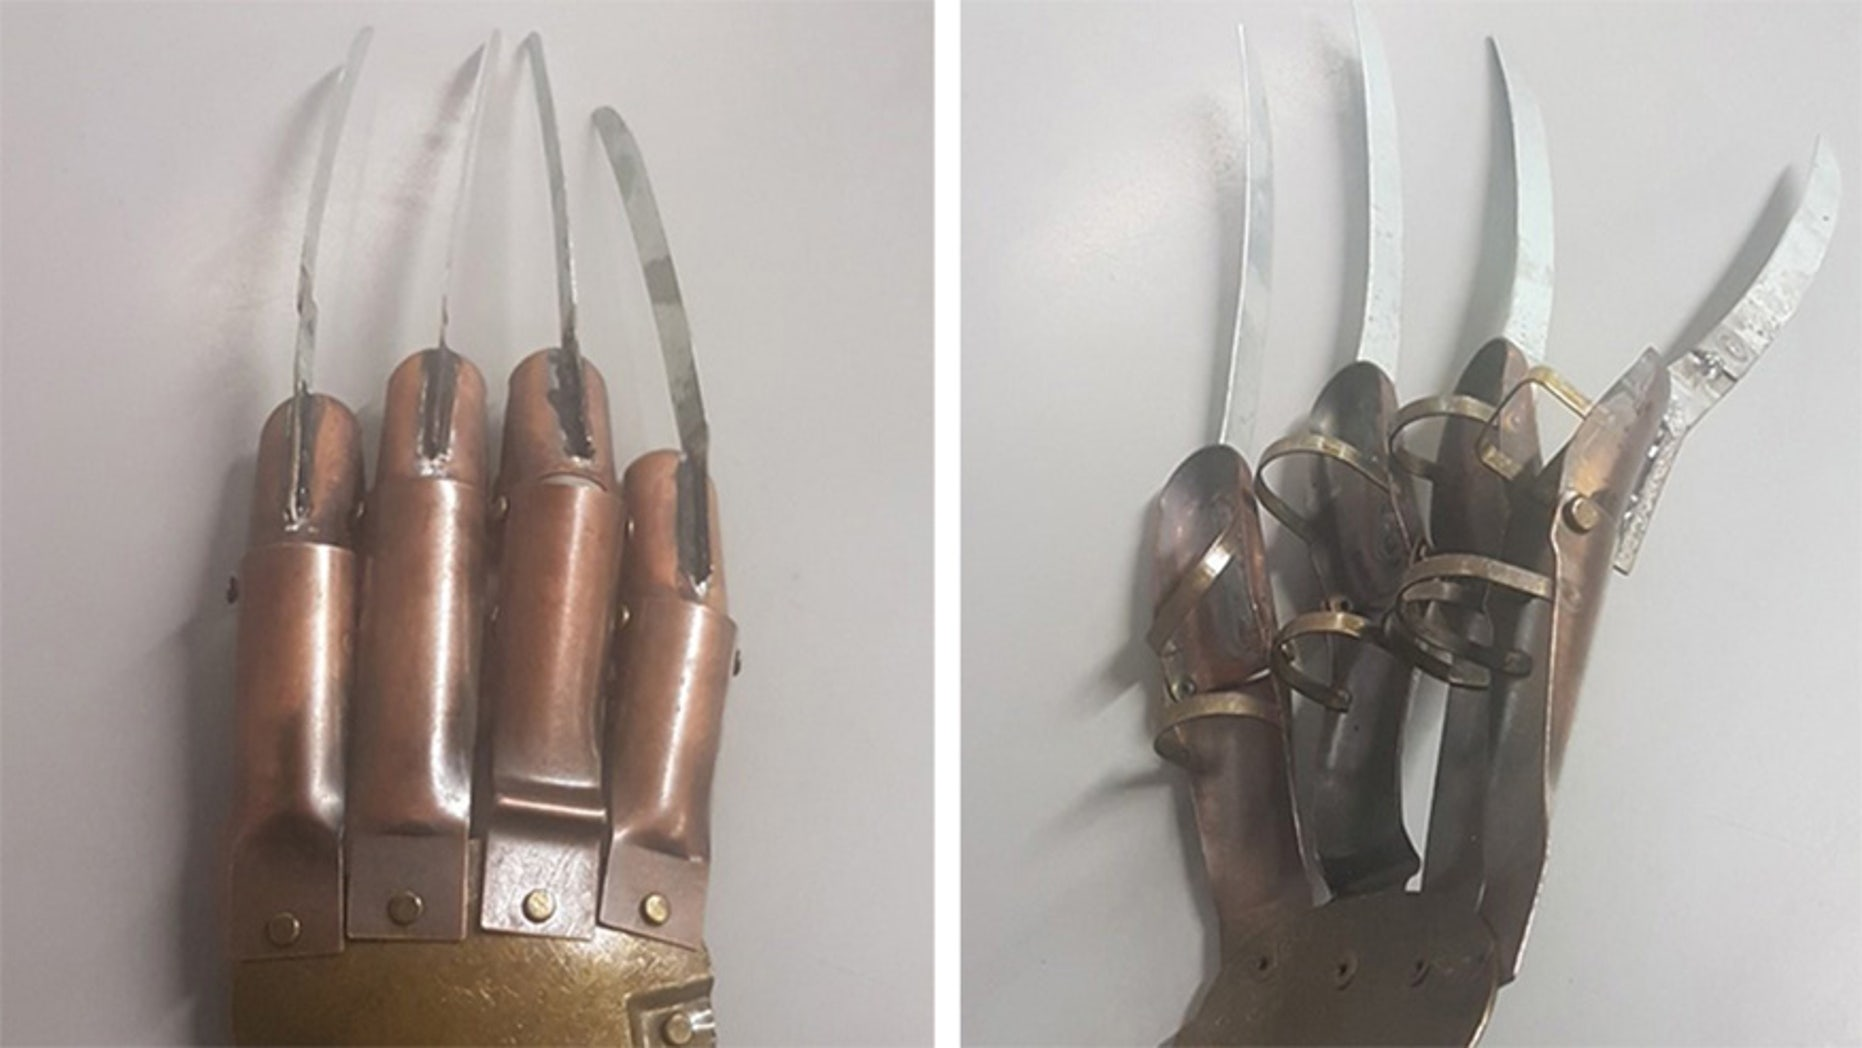 This Freddy Krueger-like metal glove was dropped off at UK police department.